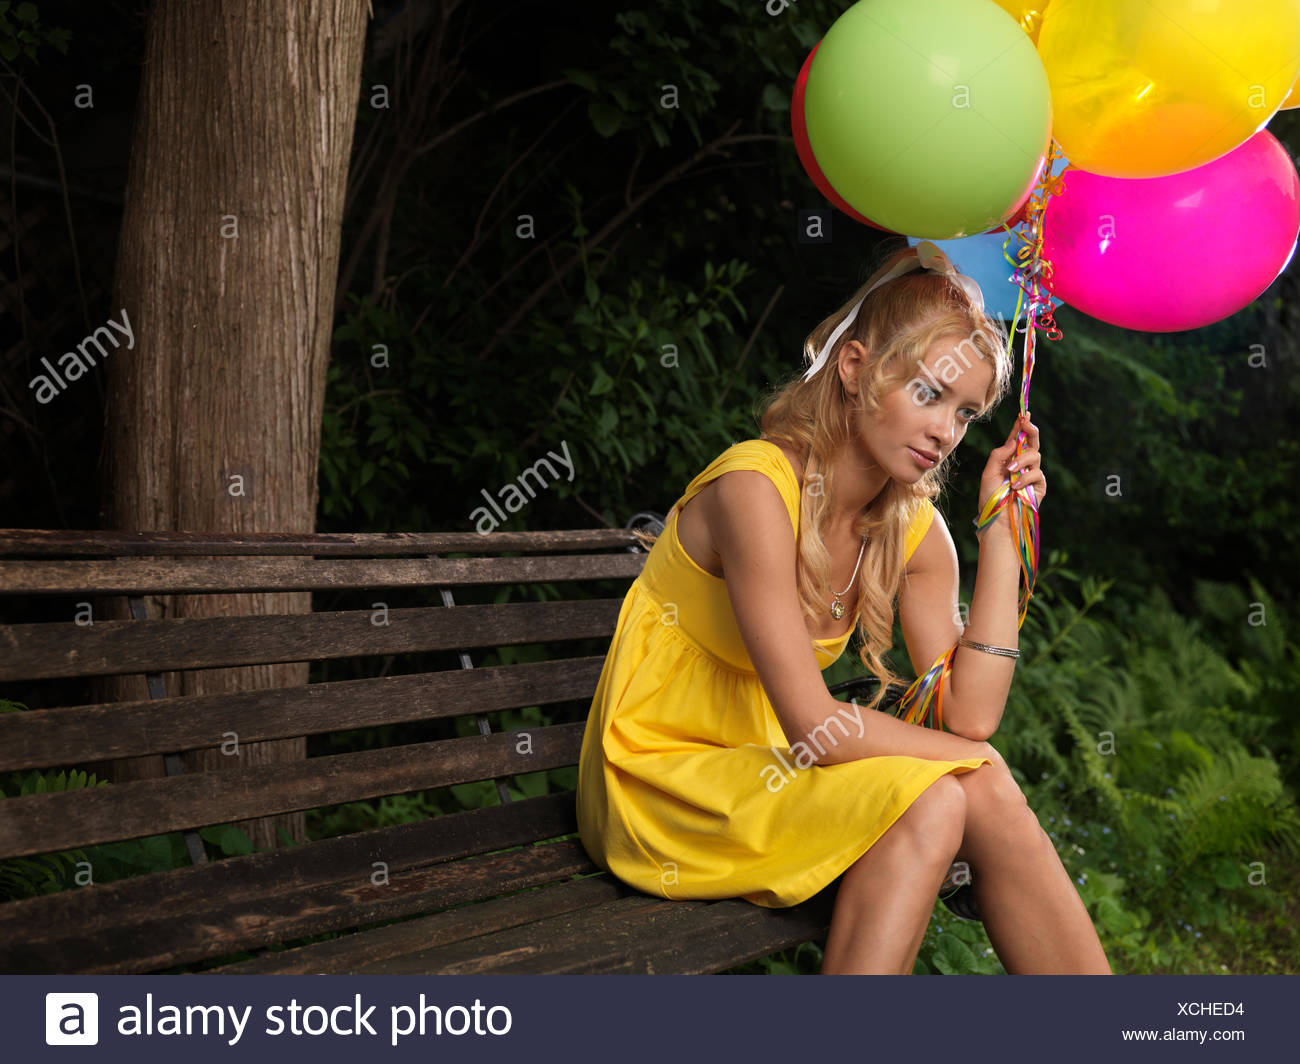 Woman And Sad And Bench Stock Photos Amp Woman And Sad And